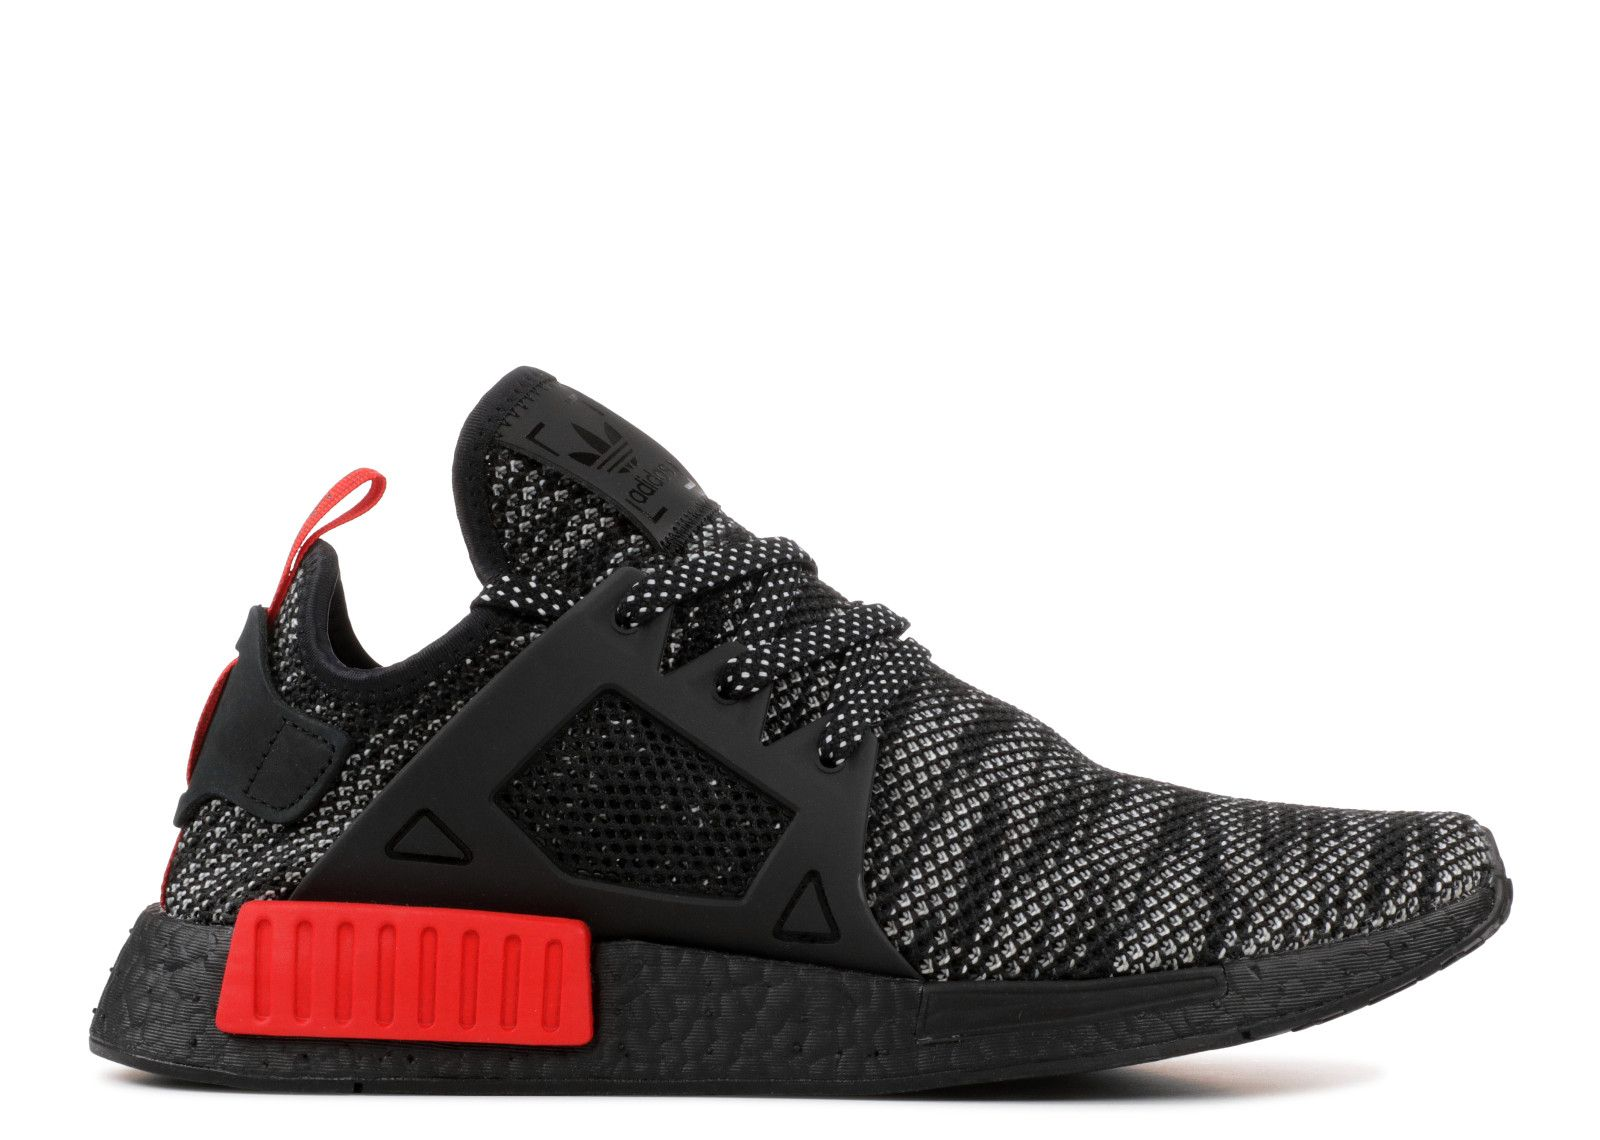 detailed pictures 7231b 3a6cc 2017-2018 New Arrival NMD XR1 BRED black red s76849 ...